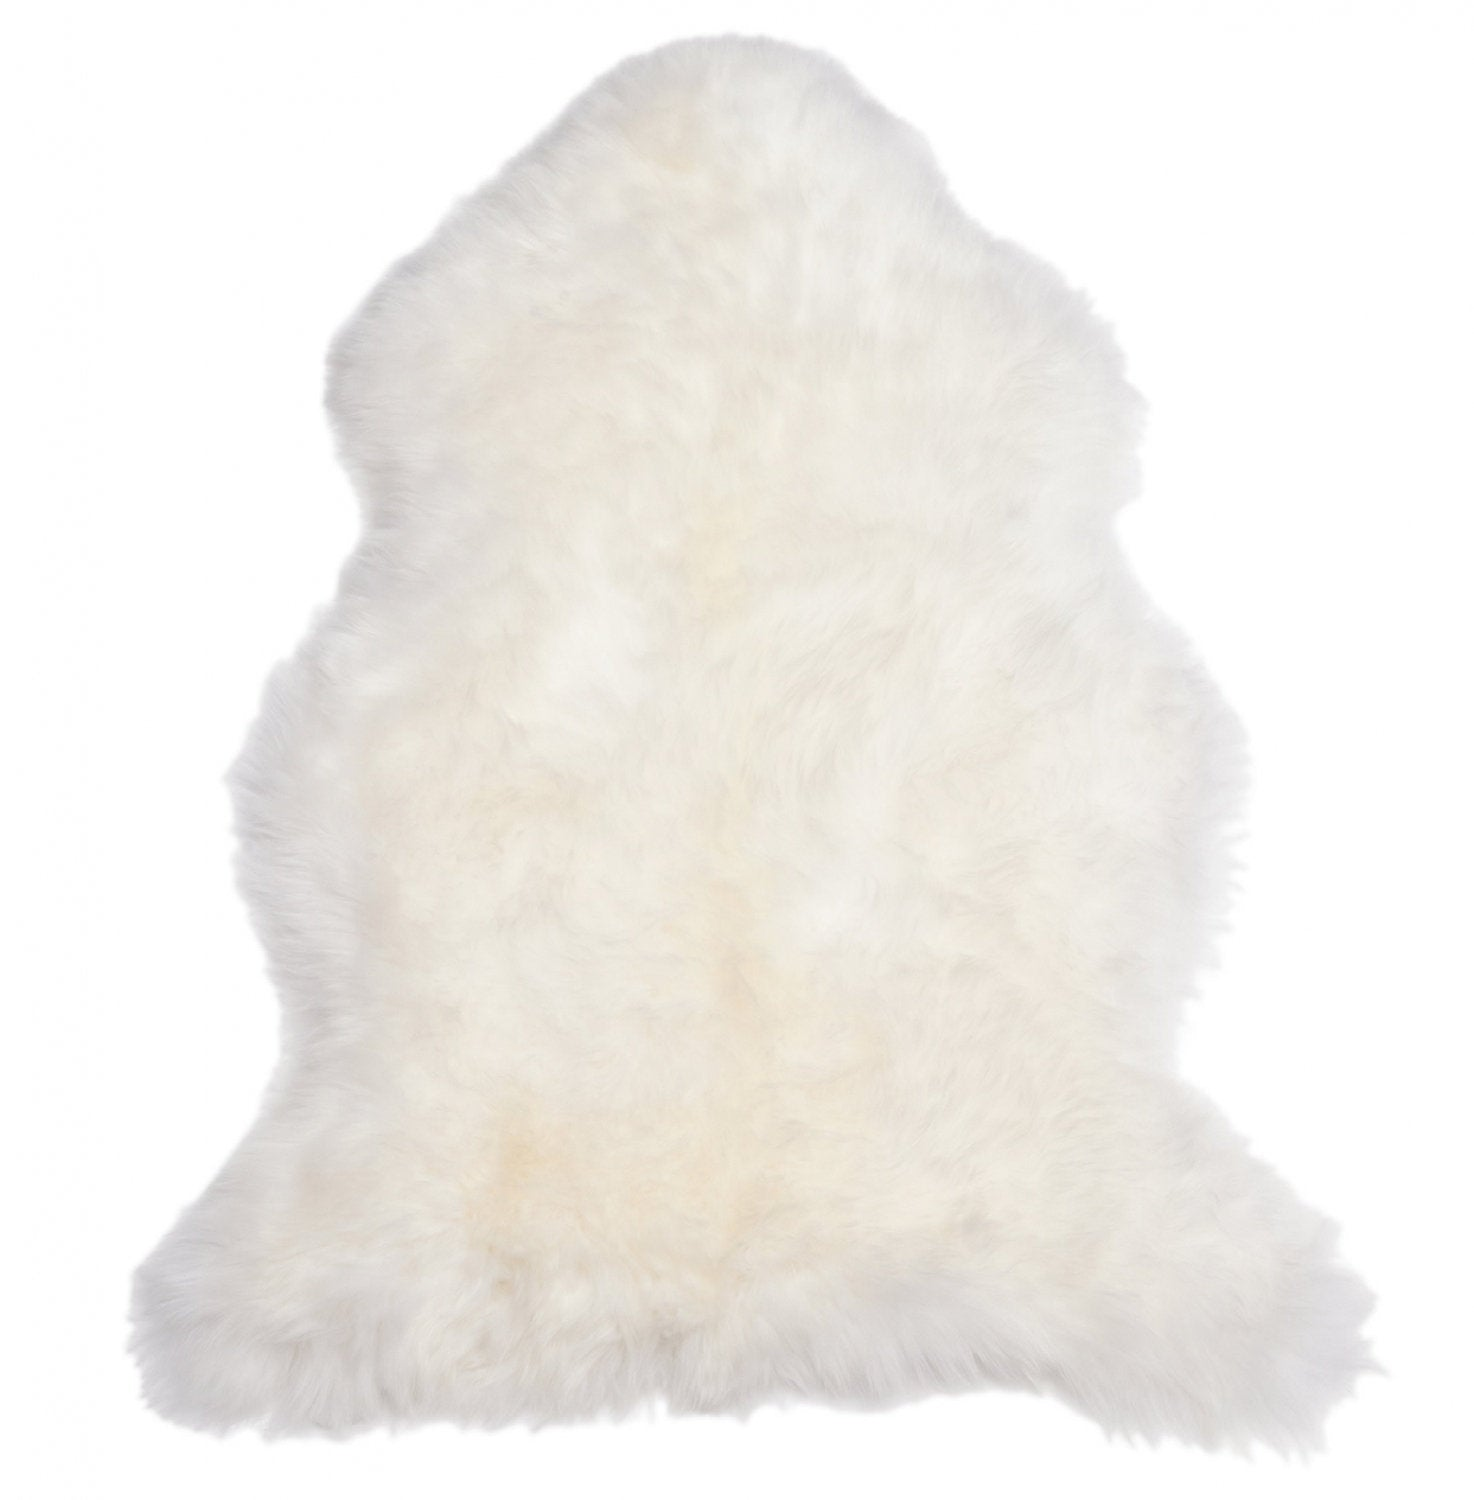 Fluffy Lambskin Rug. Premium Quality!  Sheepskin! About 80cmx70cmx55cm! Ivory Natural Sheepskin Lamb. Soft and Luxurious Long Hair.